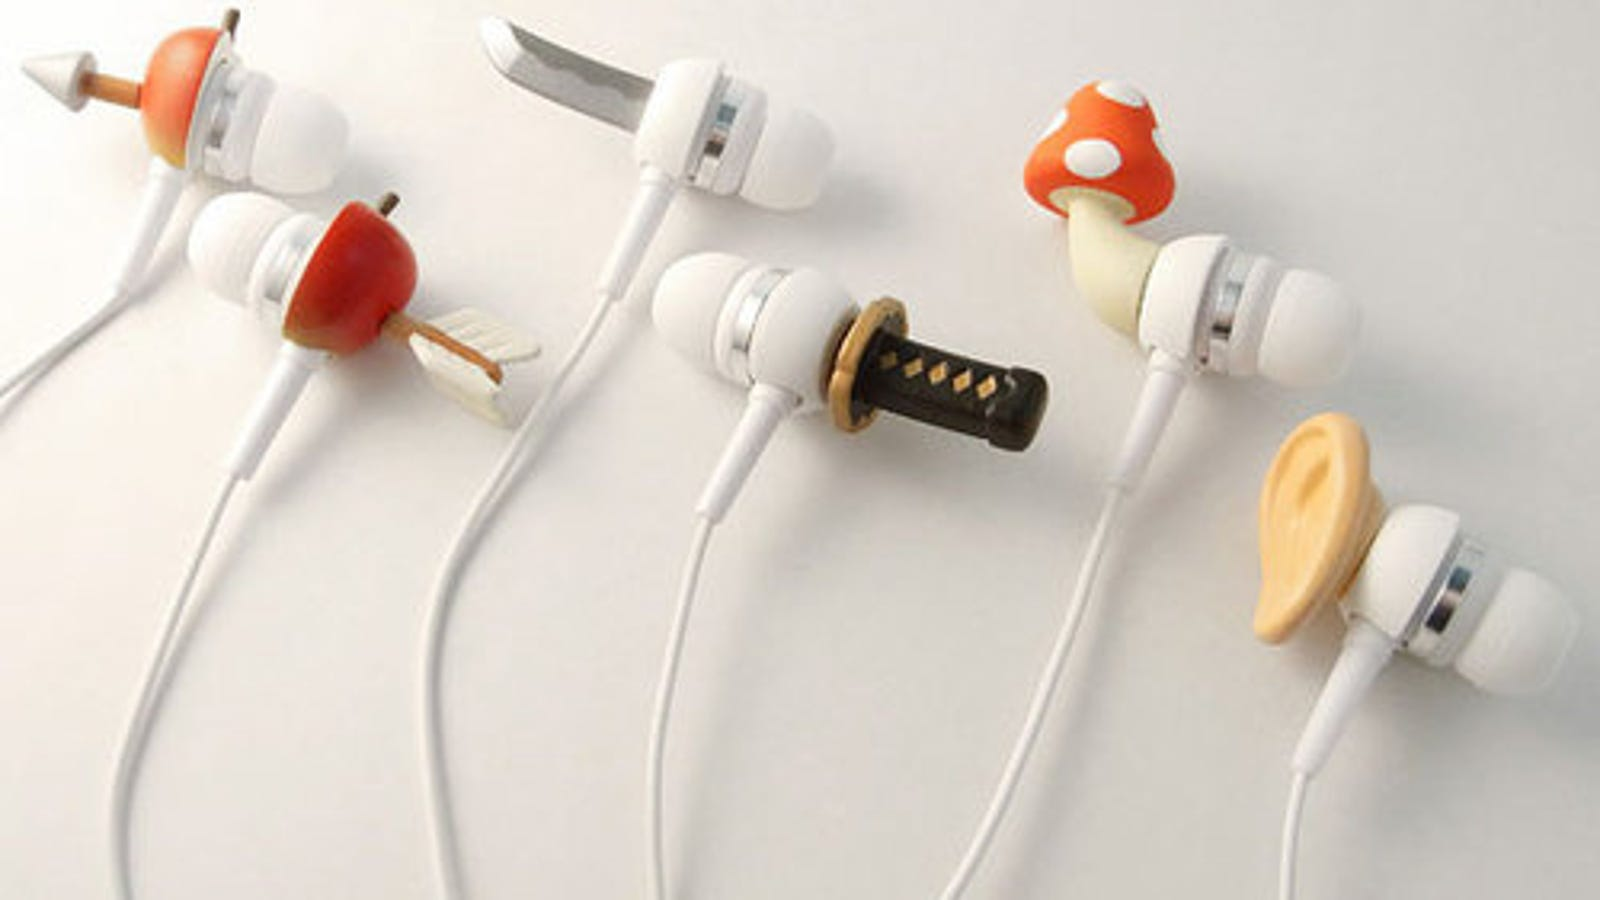 foam covers for wireless headphones - Katana Earbuds Show the World How I Feel When I Listen to LFO